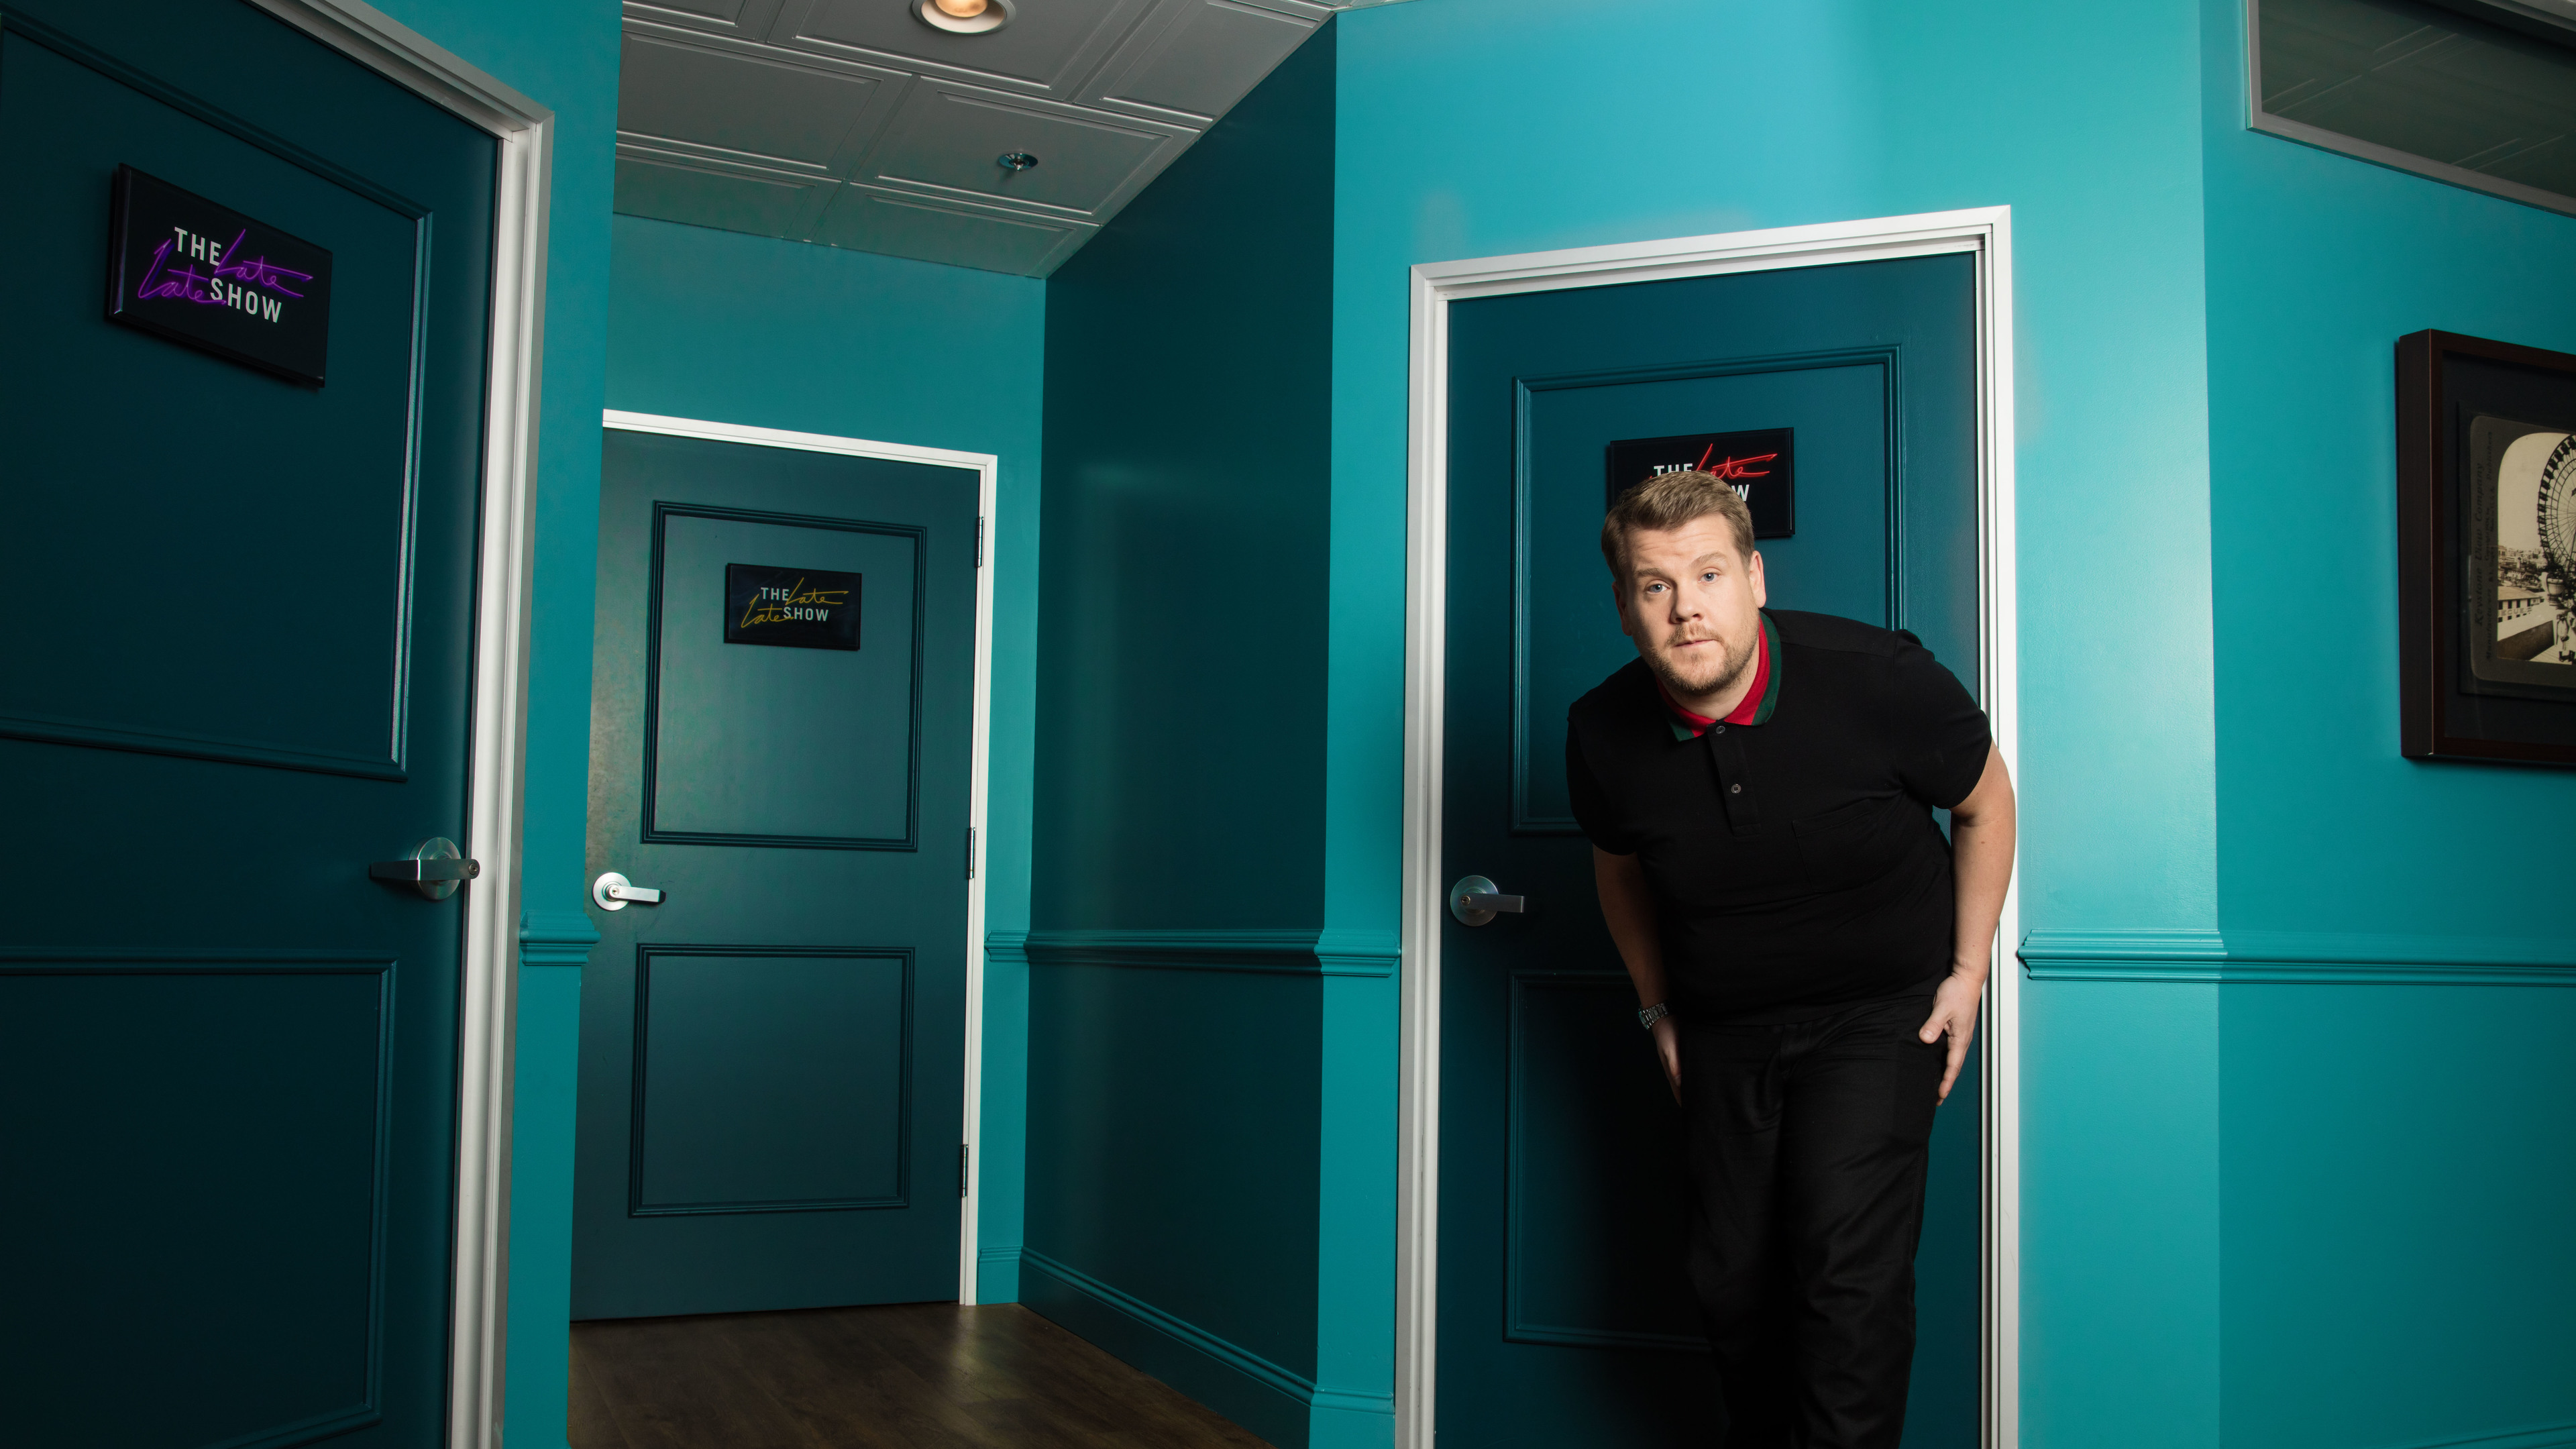 james corden 8k 1536947488 - James Corden 8k - male celebrities wallpapers, james corden wallpapers, hd-wallpapers, boys wallpapers, 8k wallpapers, 5k wallpapers, 4k-wallpapers